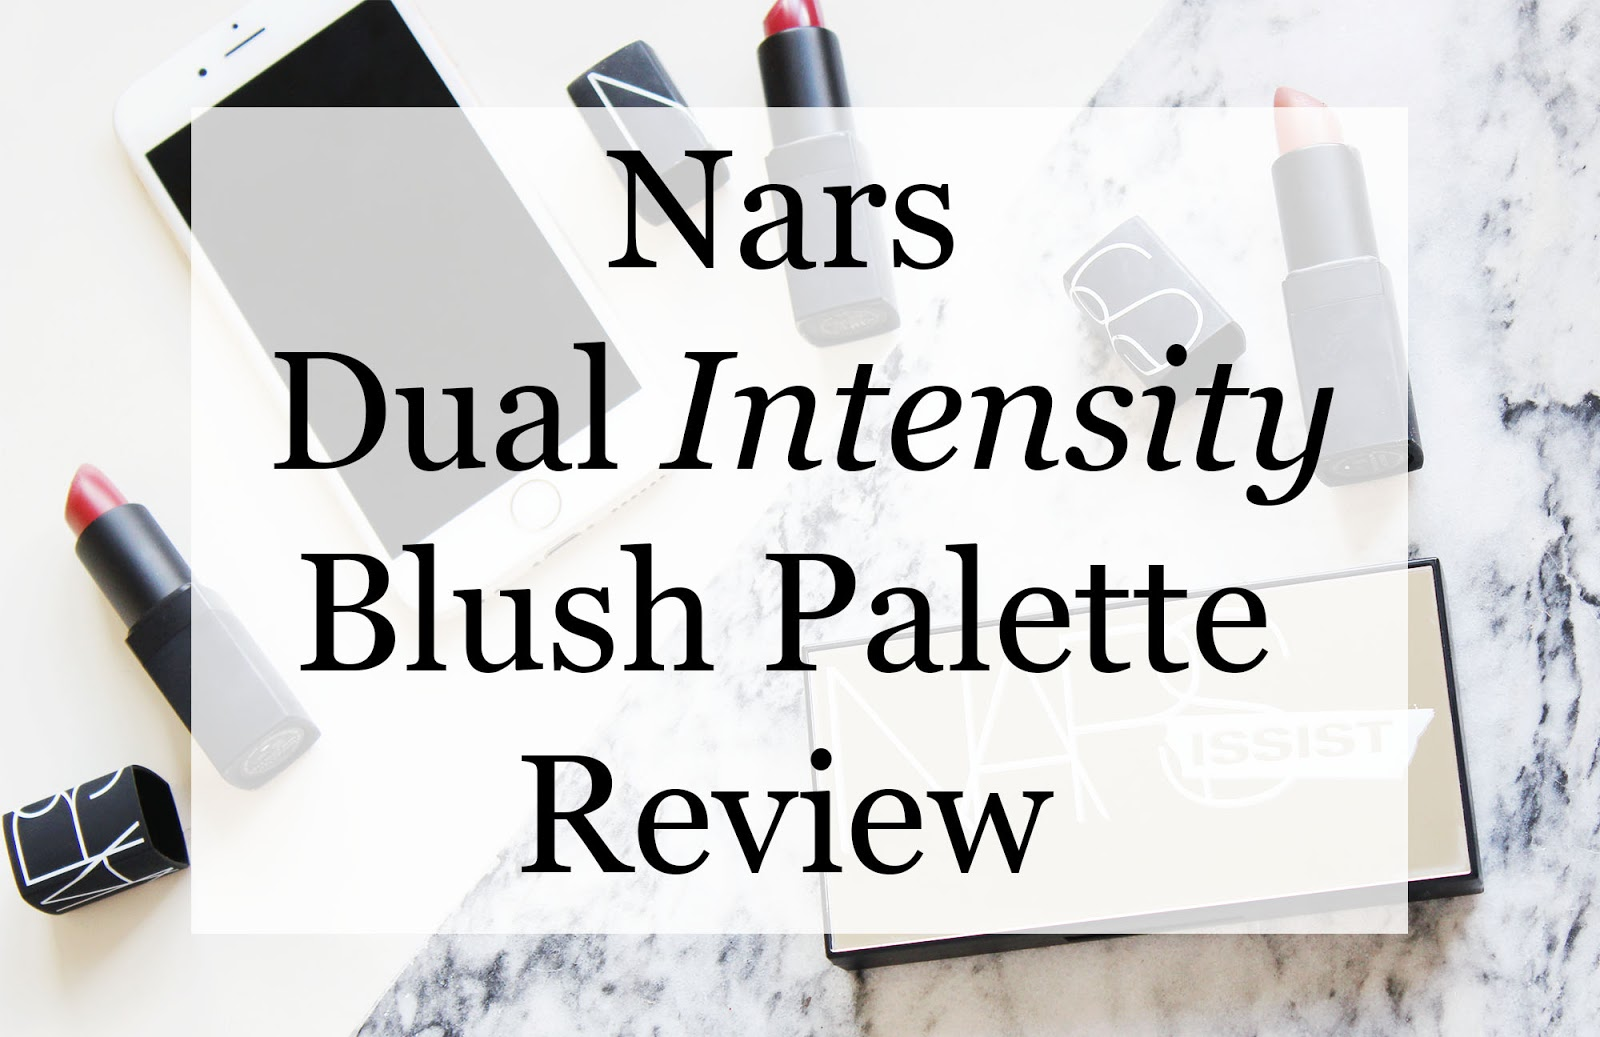 Nars Dual Intensity Blush Palette Review Modish Ramblings On Original I Have Been A Big Fan Of The Blushes By Ever Since They First Came Out And Quite Few In My Collection Now